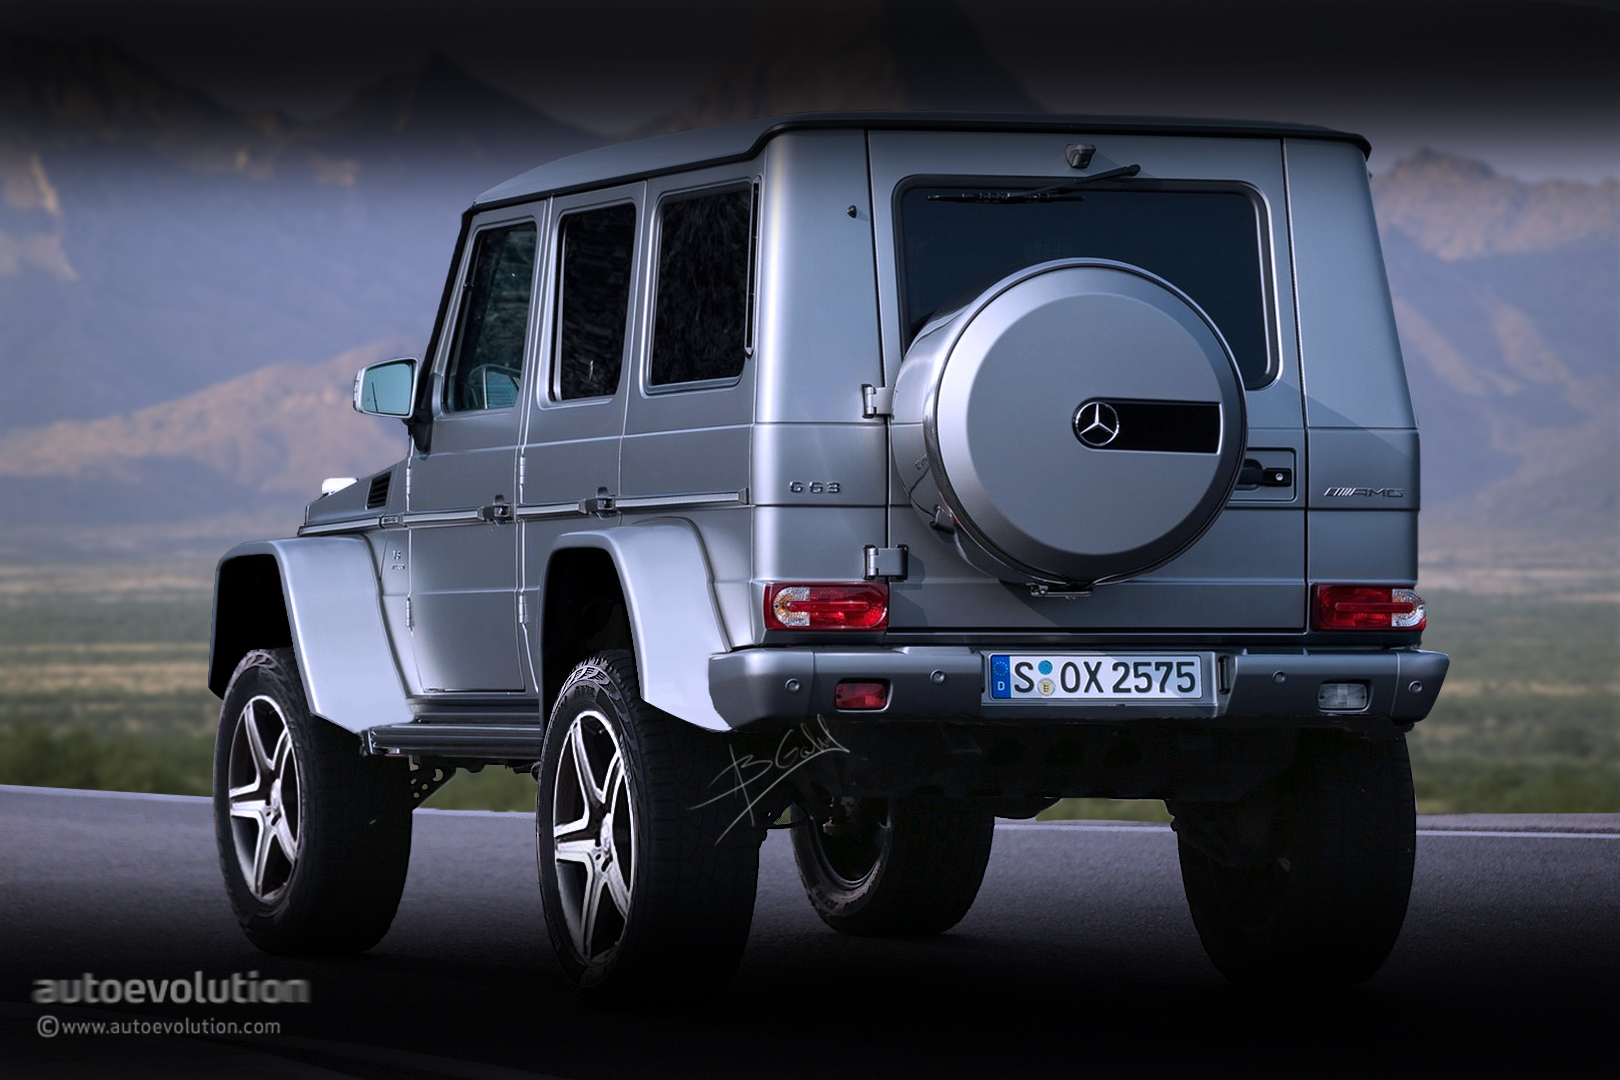 mercedes g63 amg 4x4 version of g63 amg 6x6 rendered ahead of 2015 debut autoevolution. Black Bedroom Furniture Sets. Home Design Ideas